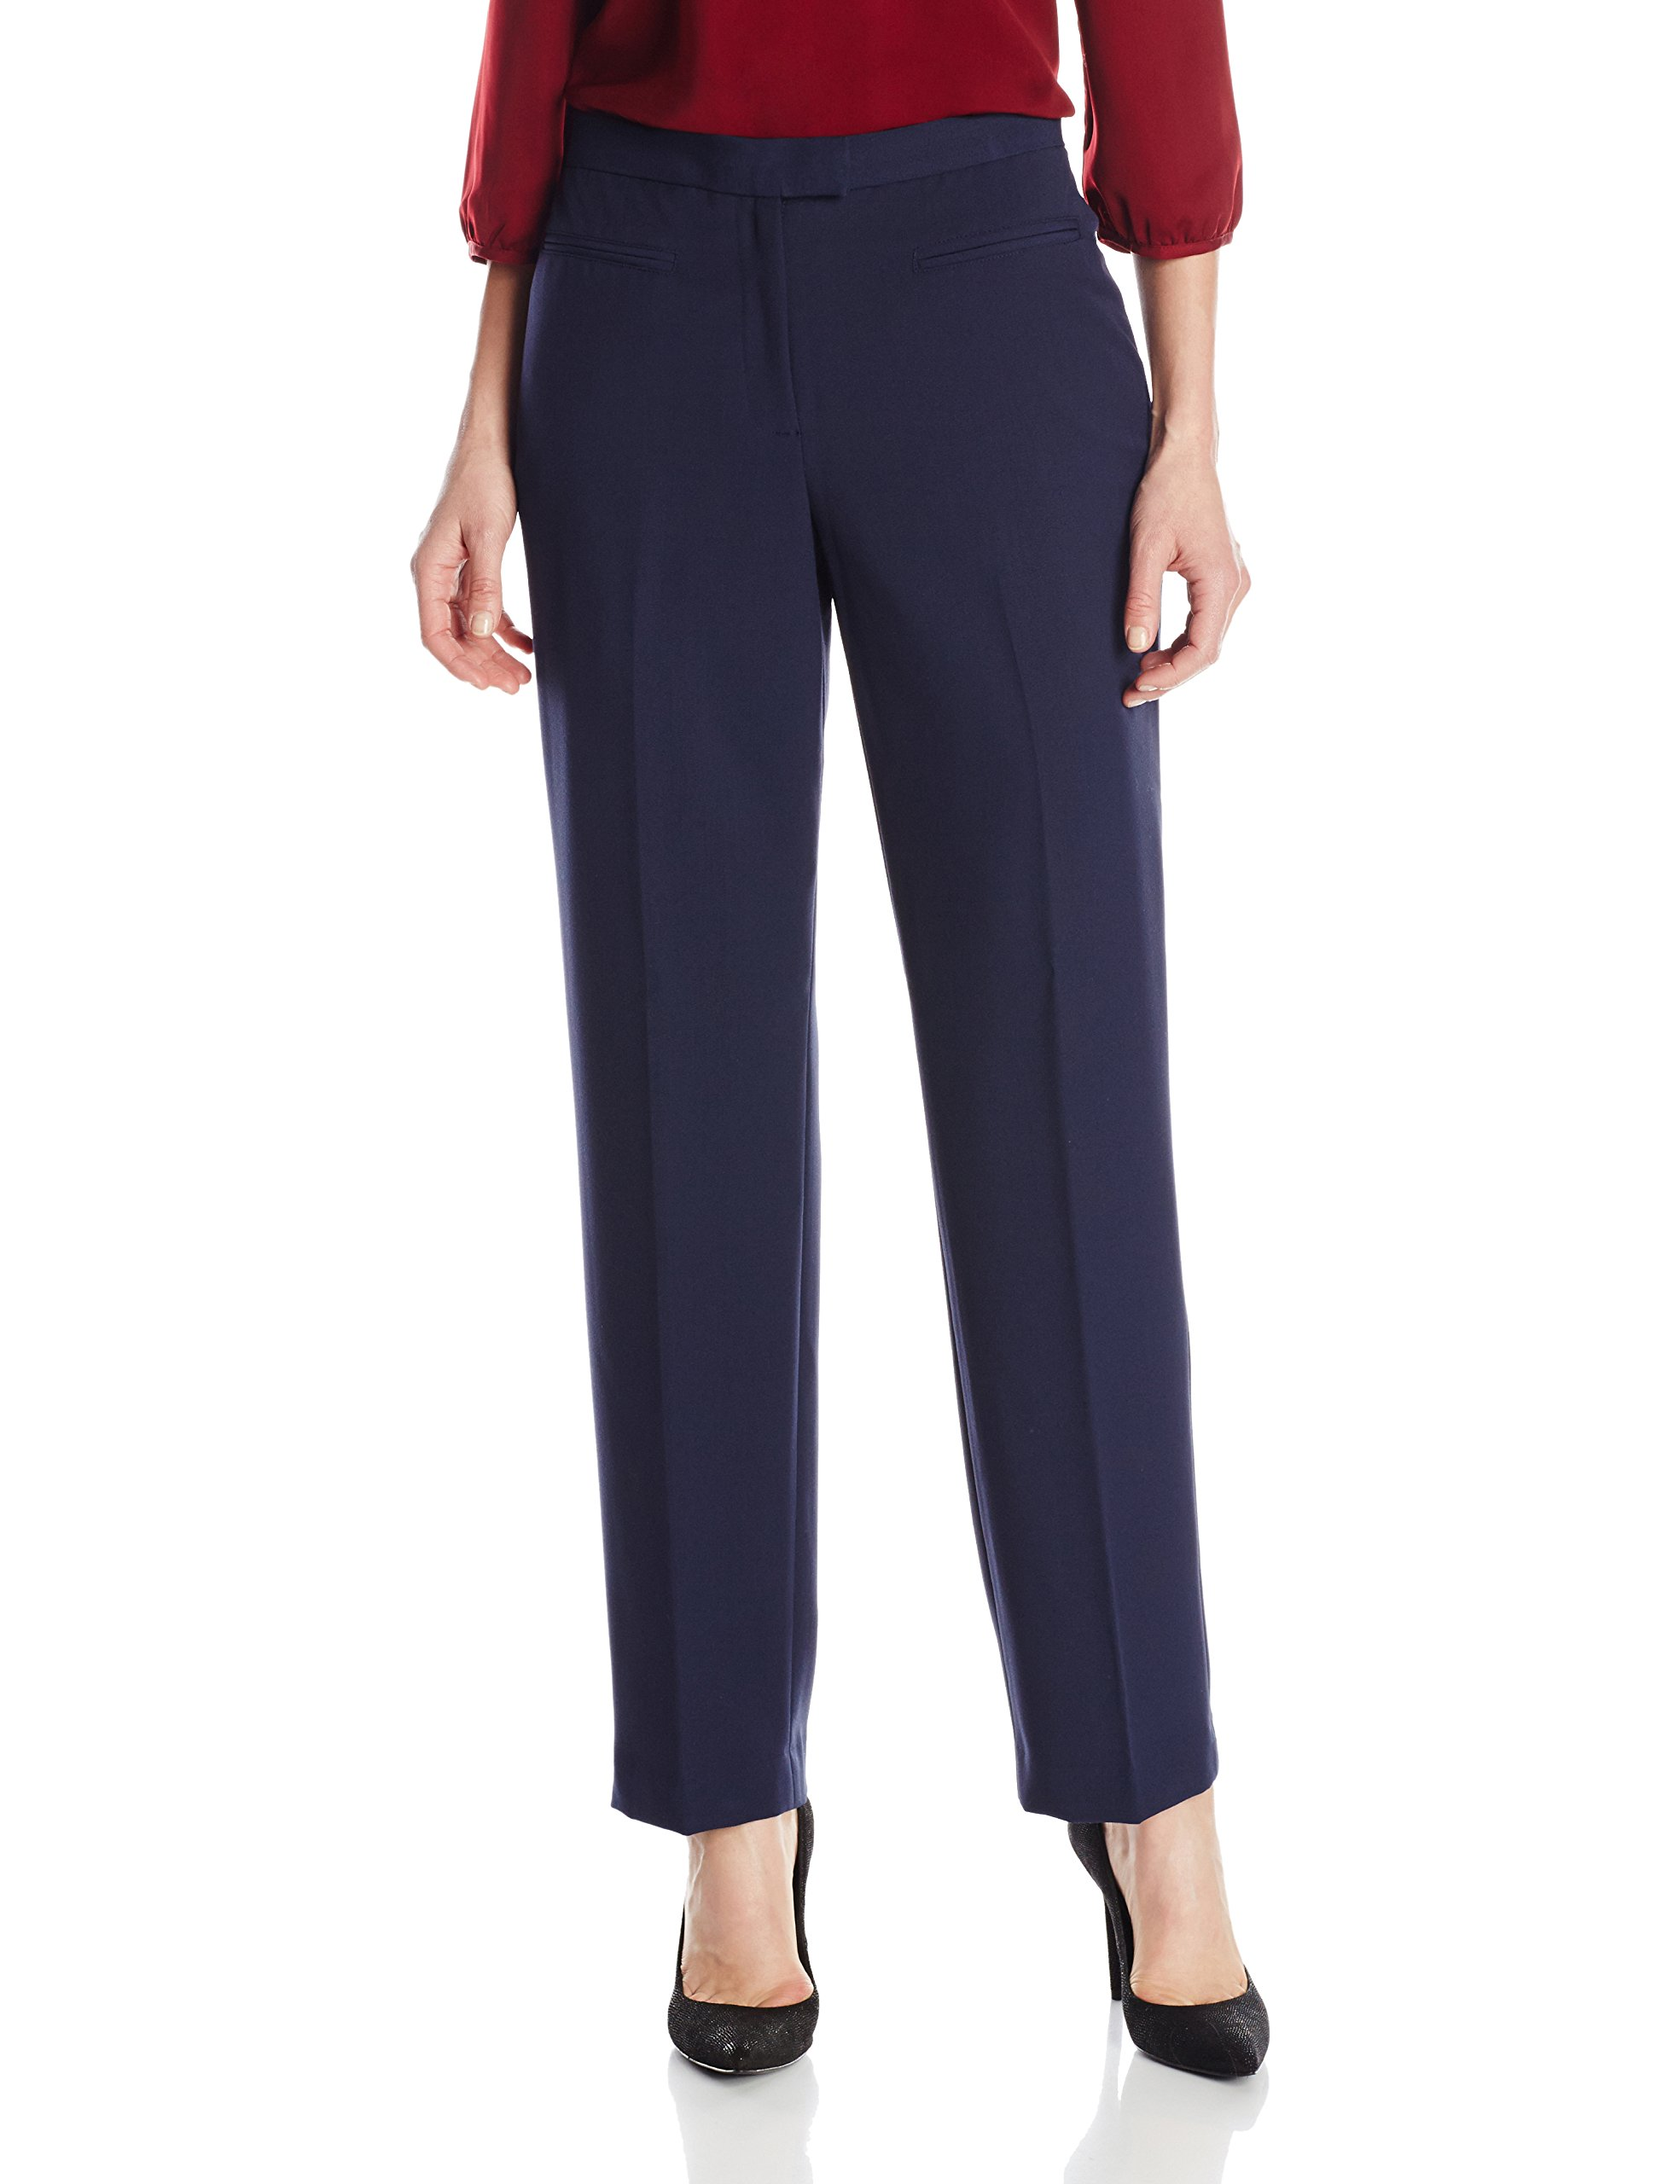 Ruby Rd. Women's Flat Front Easy Stretch Pant, Navy, 18